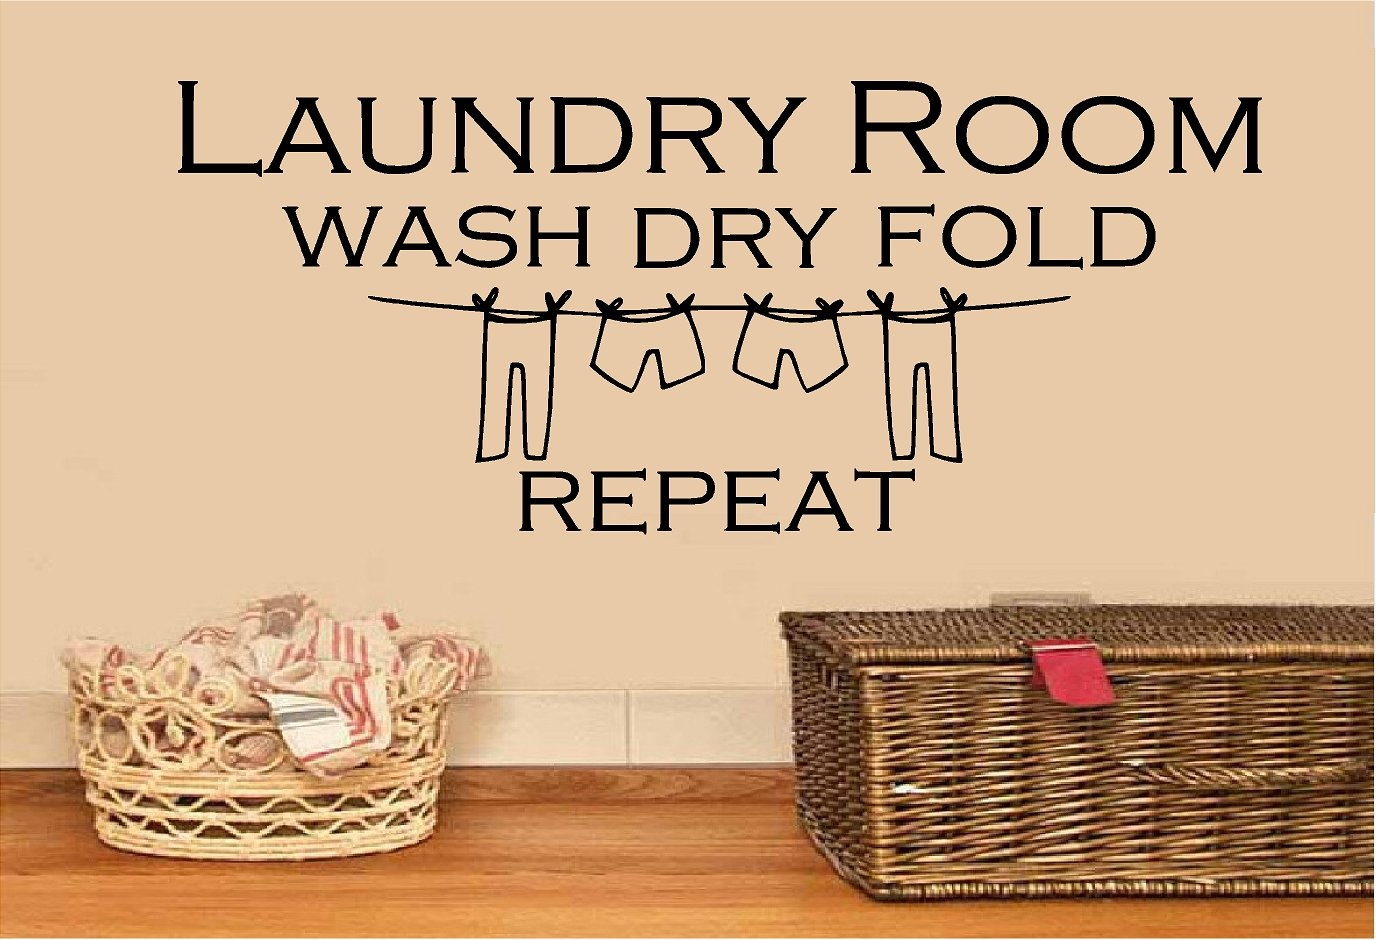 amazon com laundry room wash dry fold repeat vinyl wall decal amazon com laundry room wash dry fold repeat vinyl wall decal home decor quote saying wall letters home kitchen